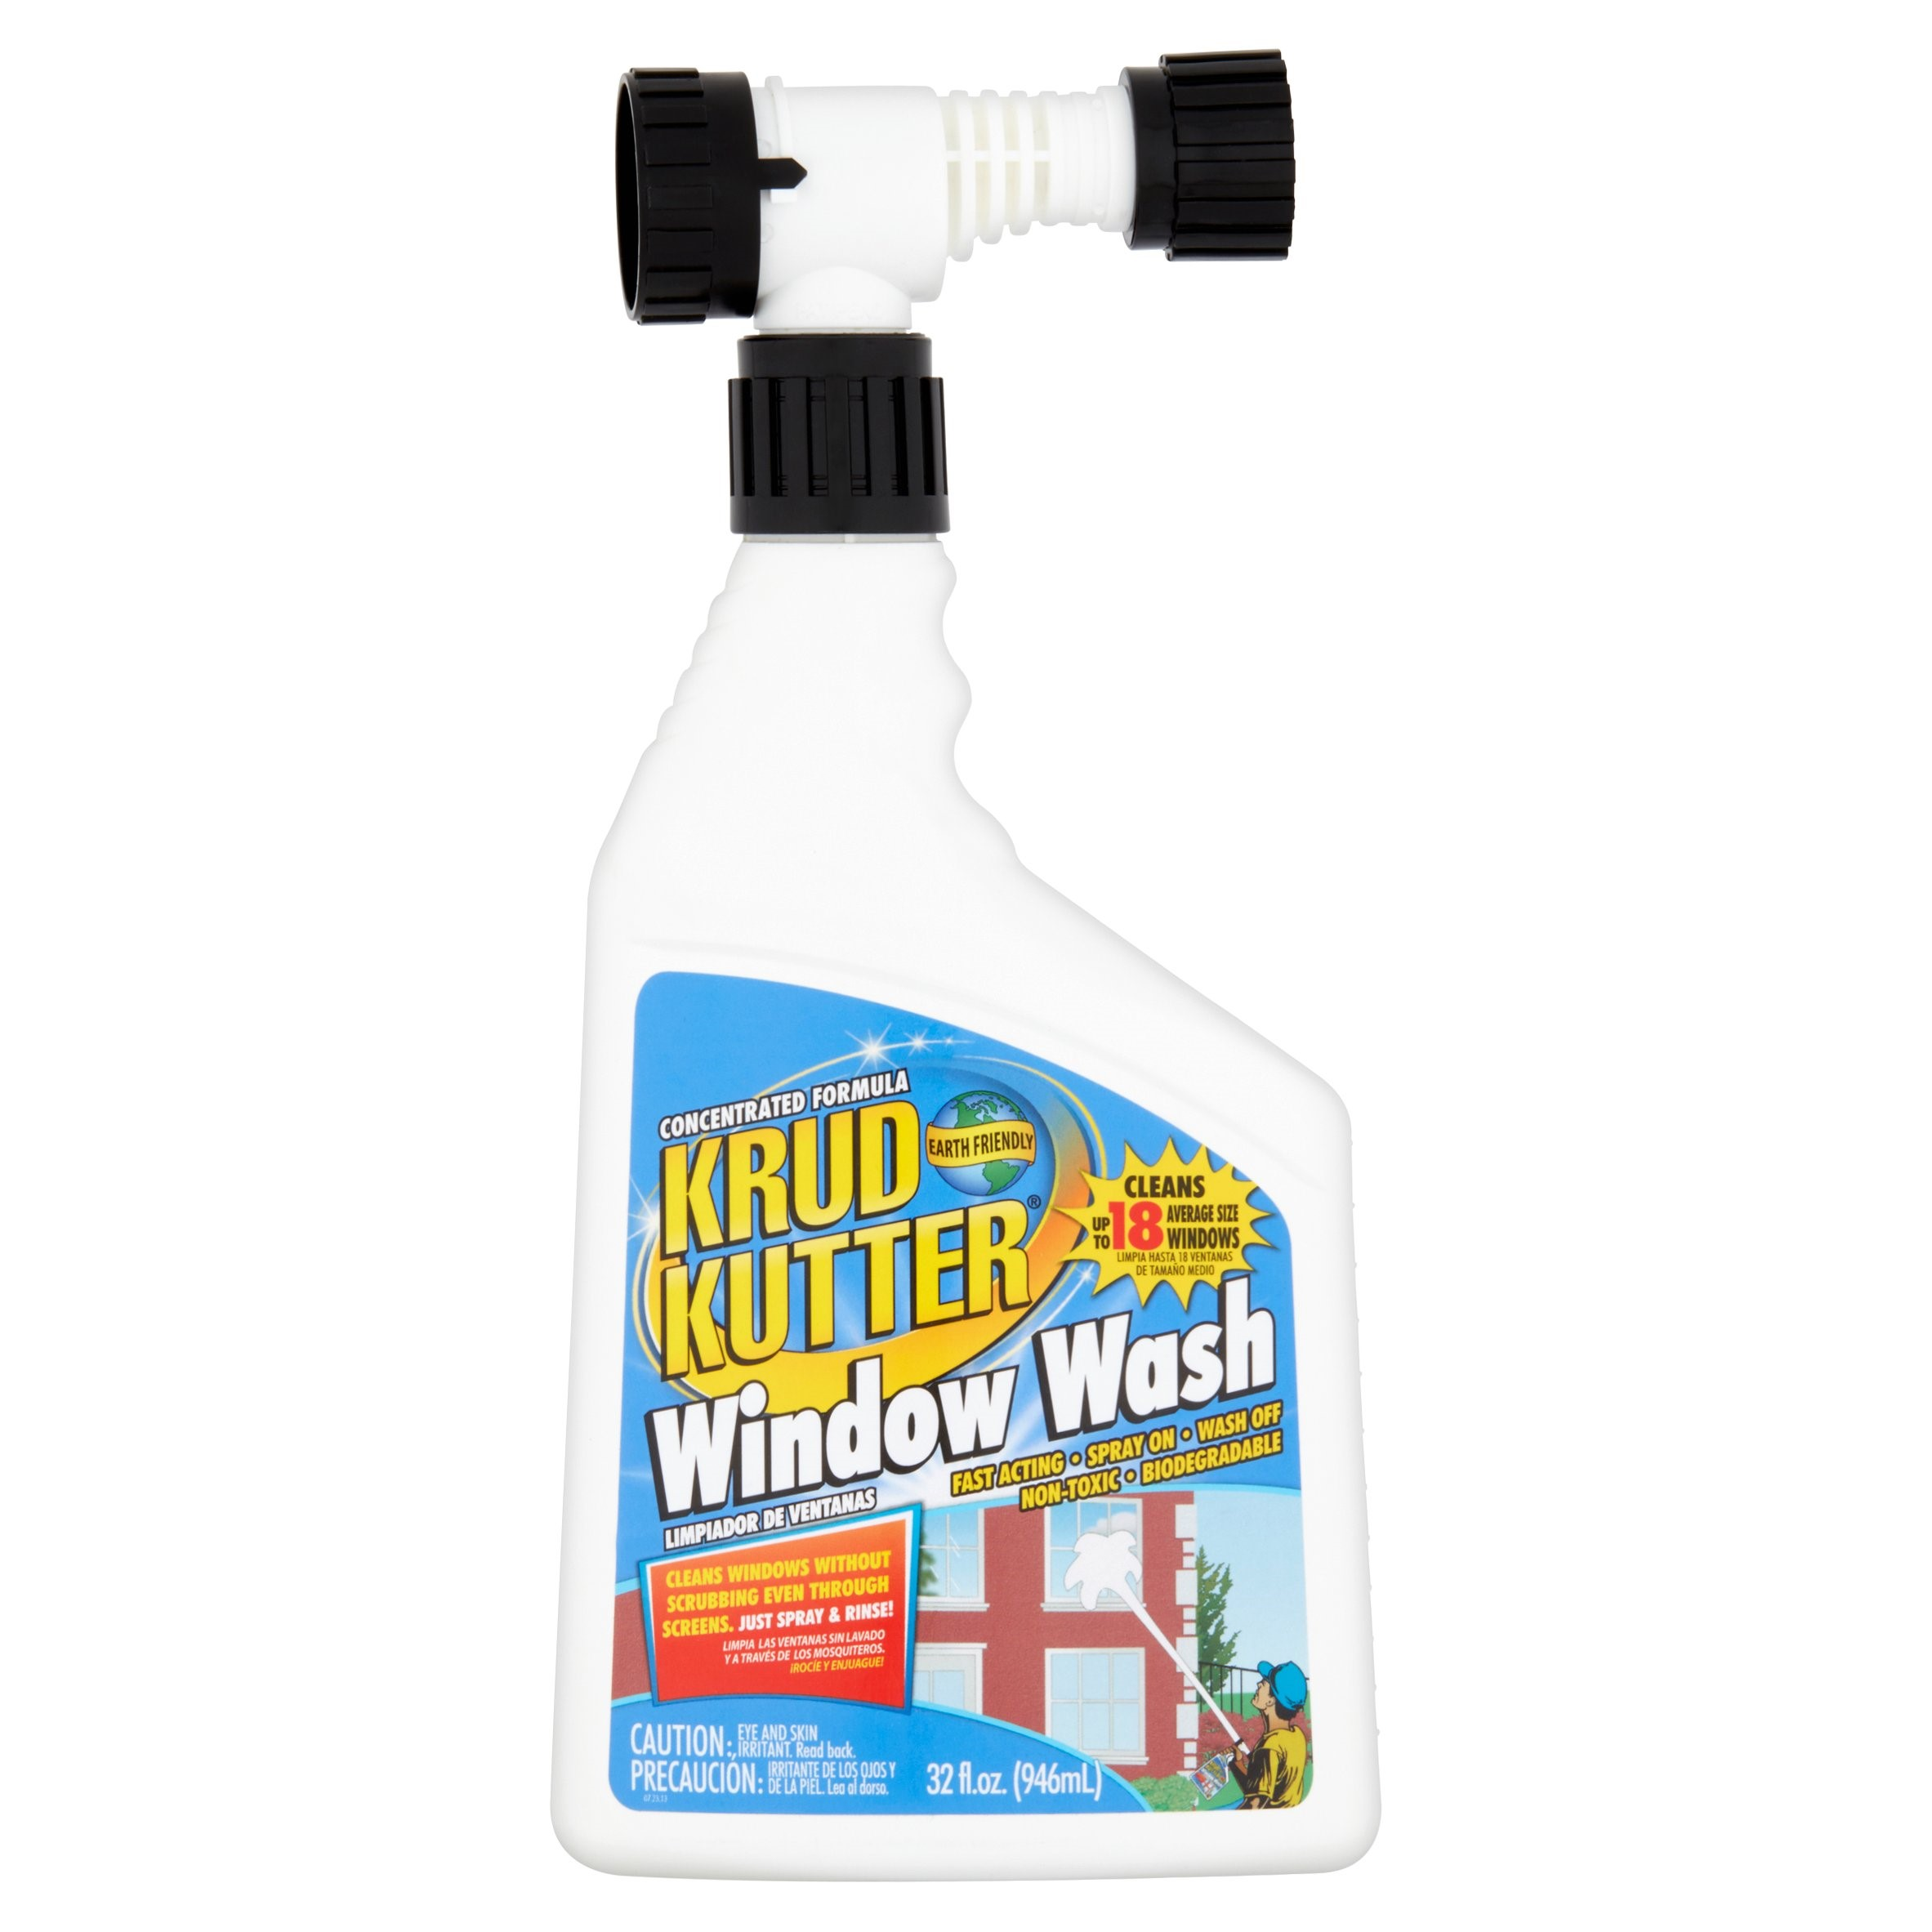 Krud Kutter Window Wash, 32 oz